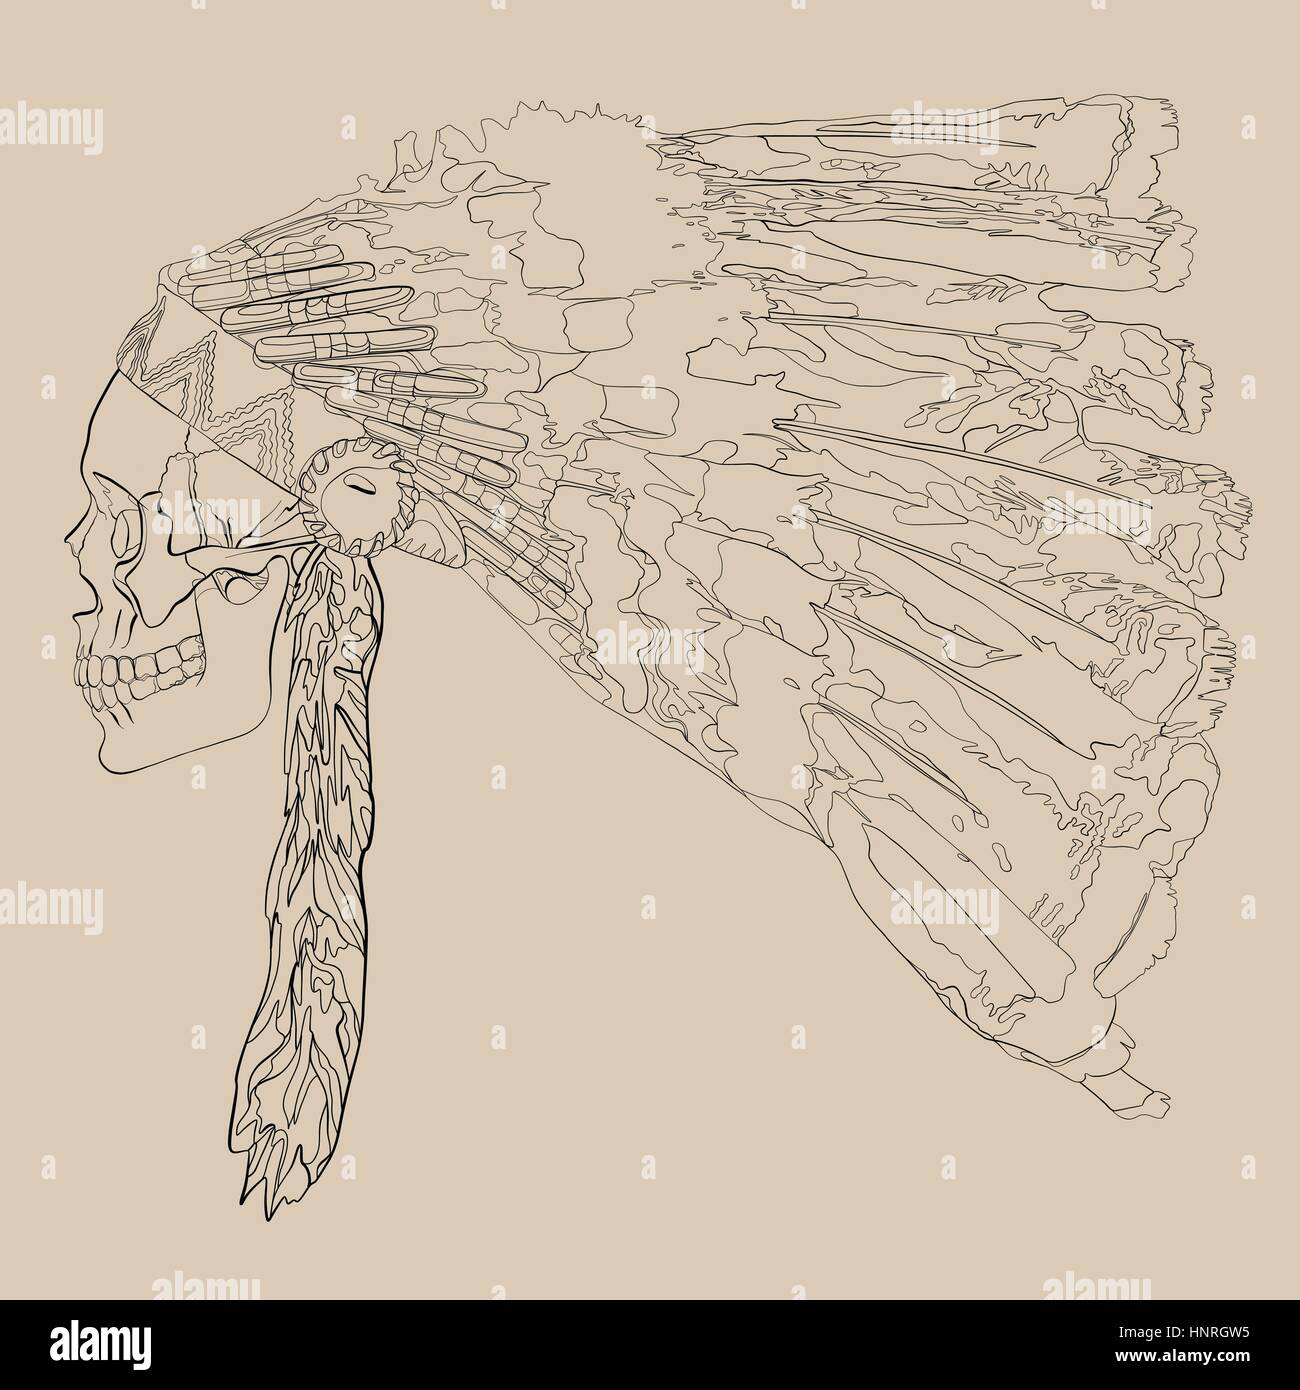 Vector illustration, hand drawing of a human skull in a headdress Indian chief - Stock Image